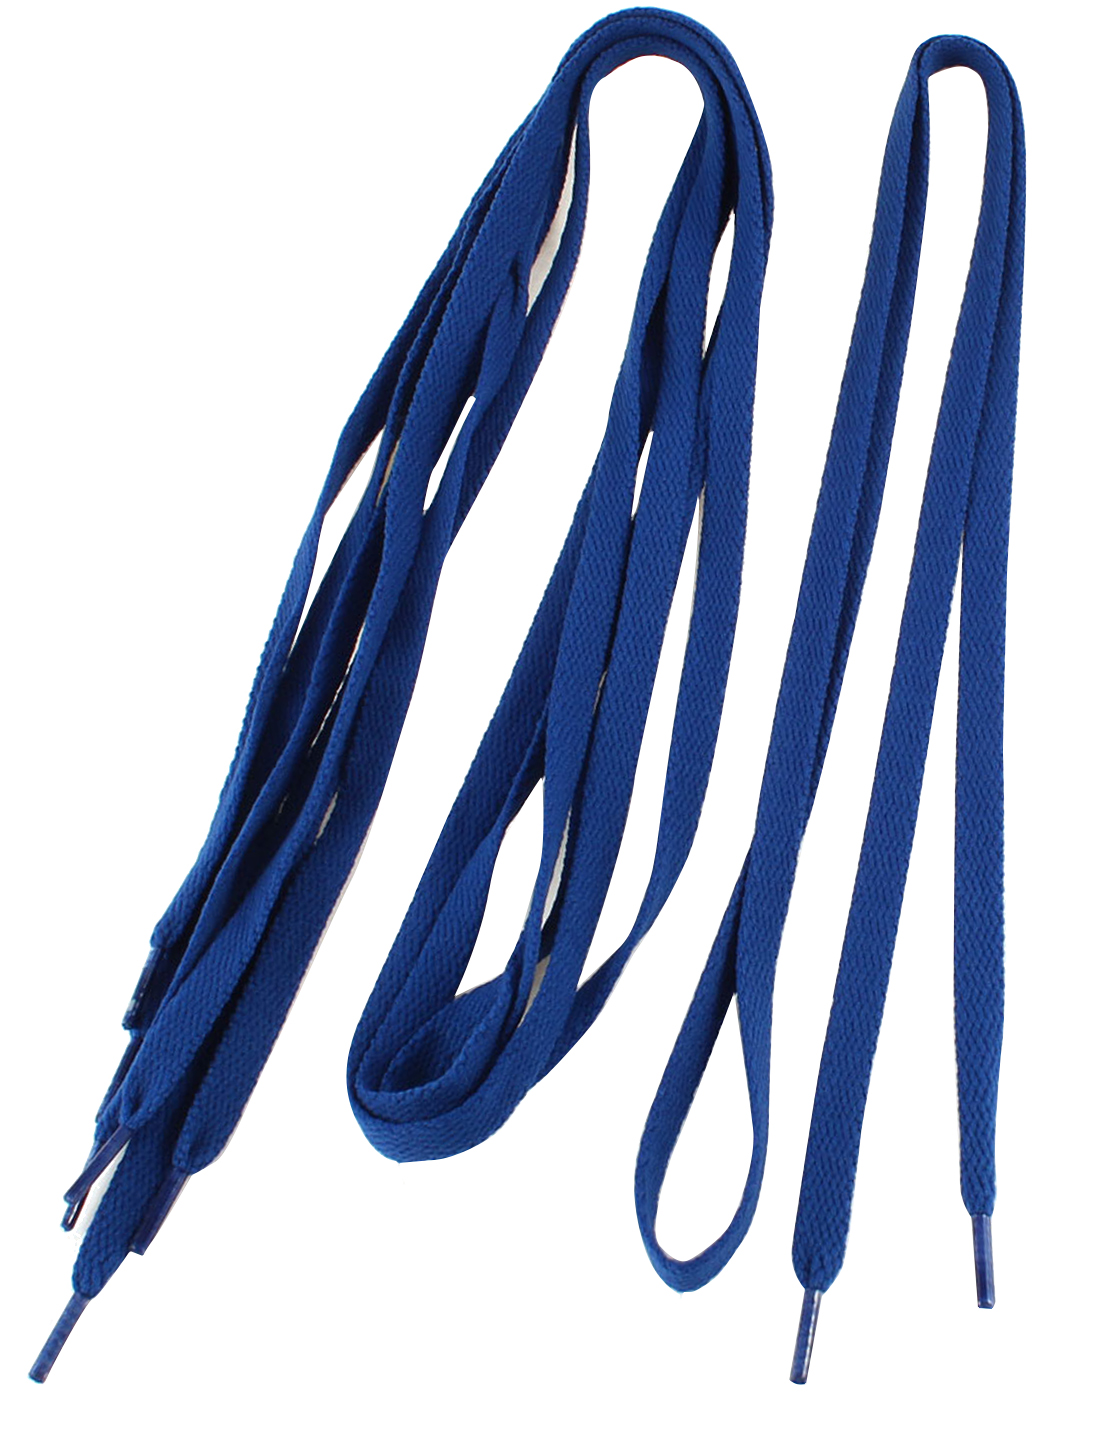 Woman Blue Nylon Flat Shoelaces Trainer Sport Shoe Laces 2 Pairs